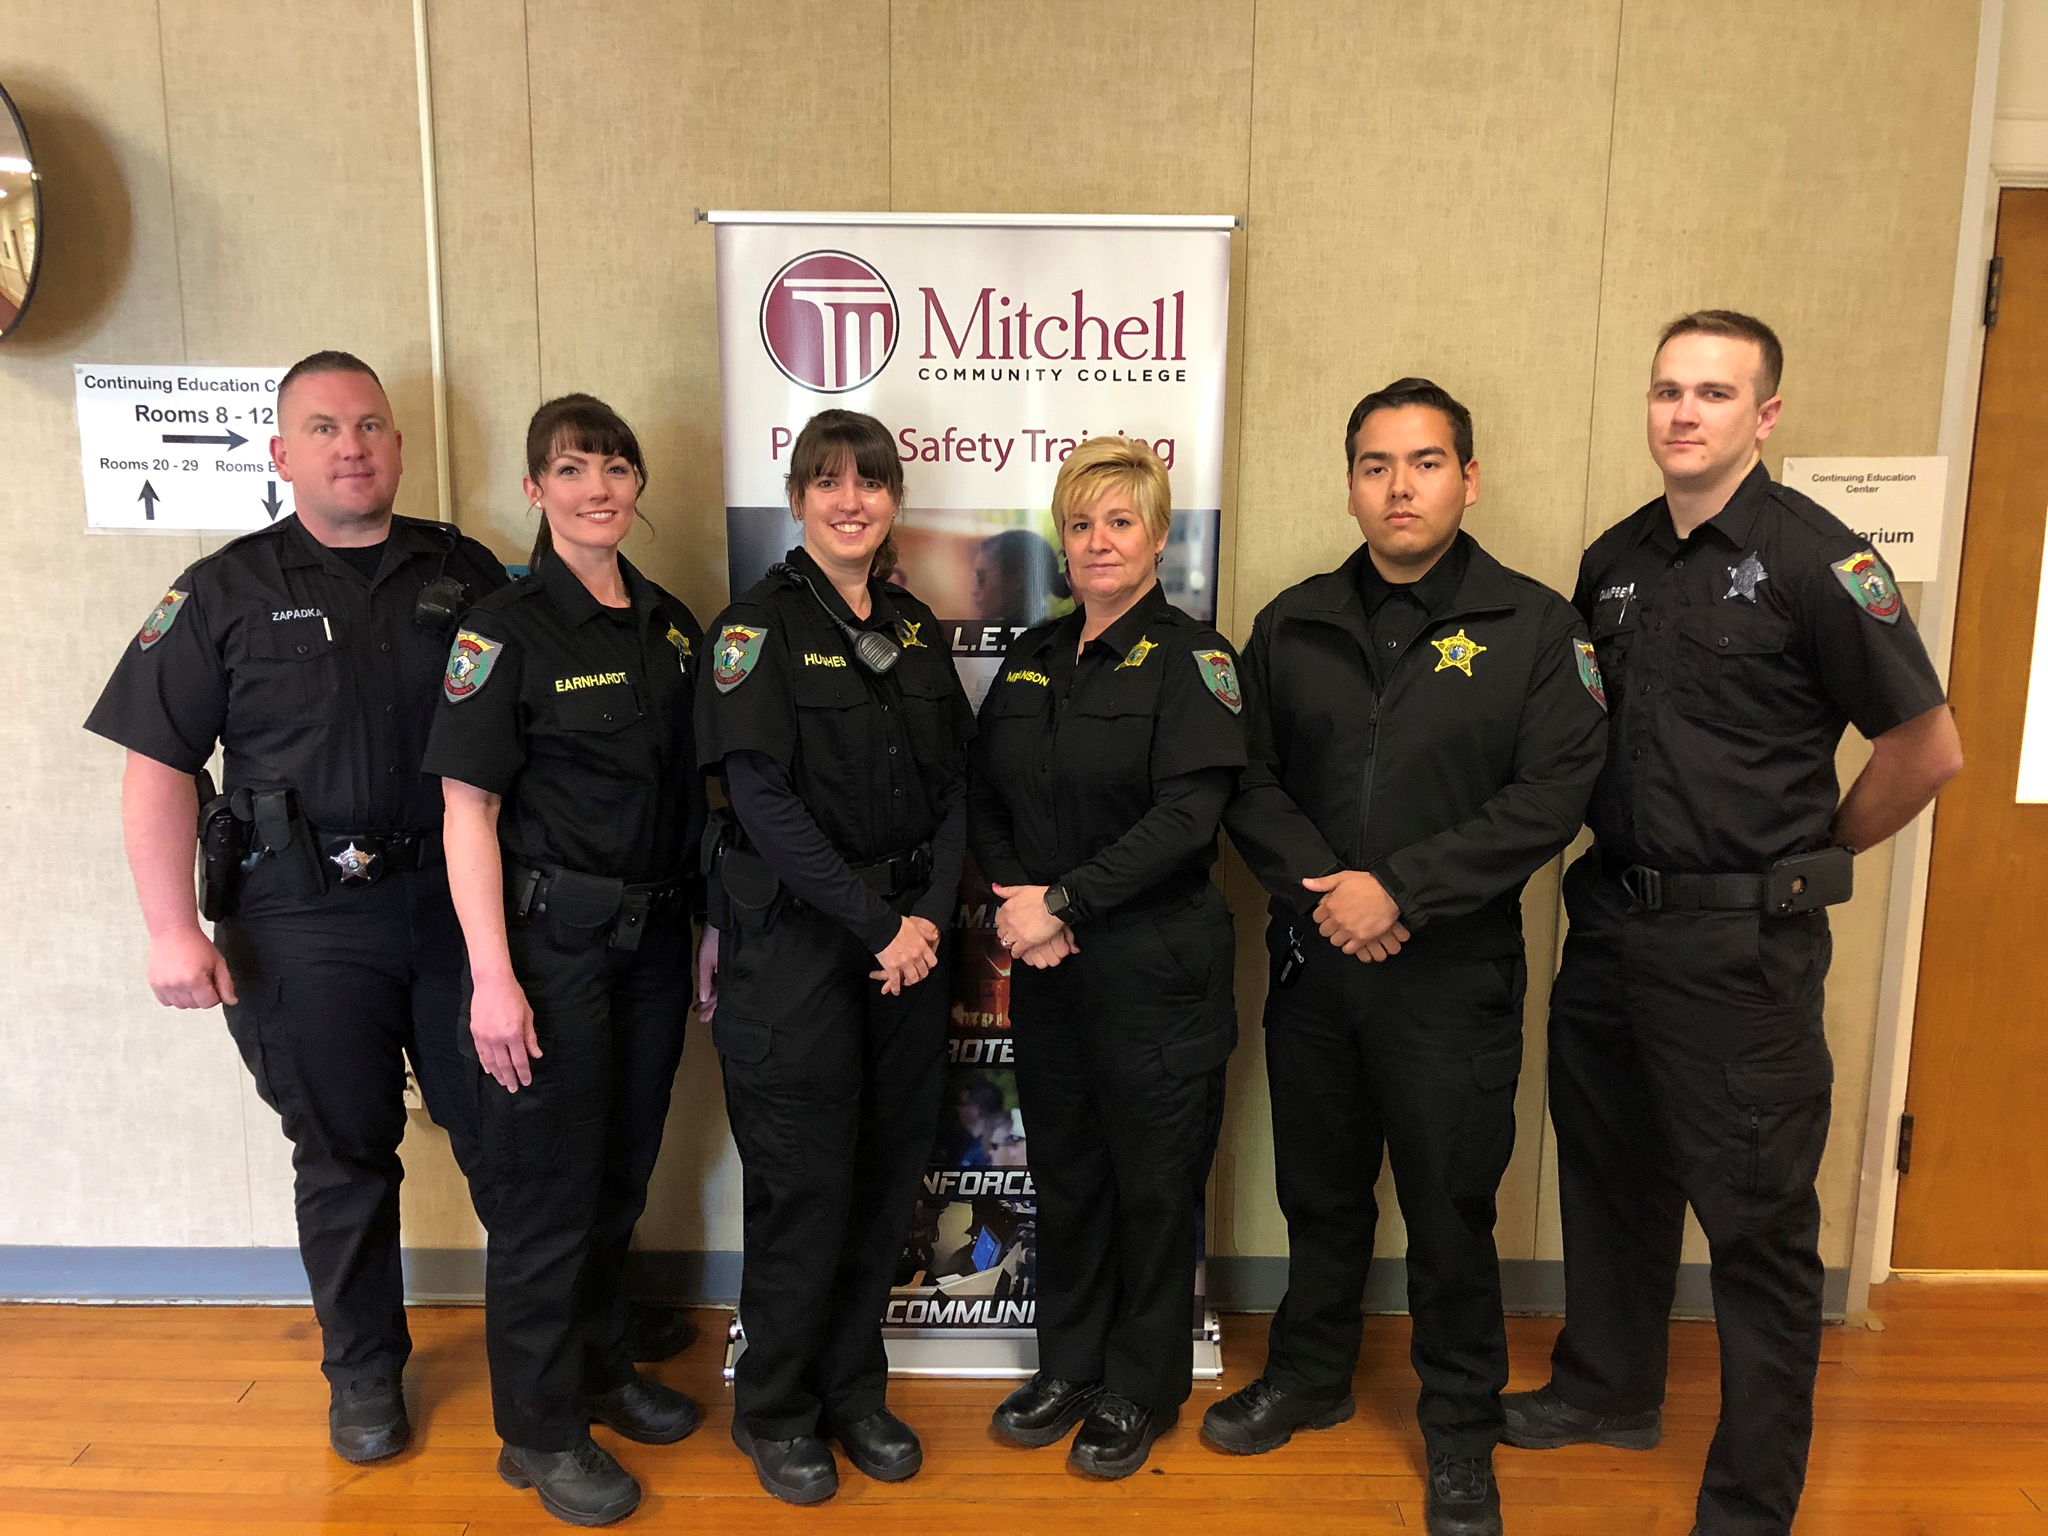 Detention Officer Certification students (L-R) Thomas Zapadka, Carol Earnhardt, Sallie Hughes, Jessica Melanson, Harvey Mercado and Tyler Campbell. All are from the Iredell County Sheriff's Office.